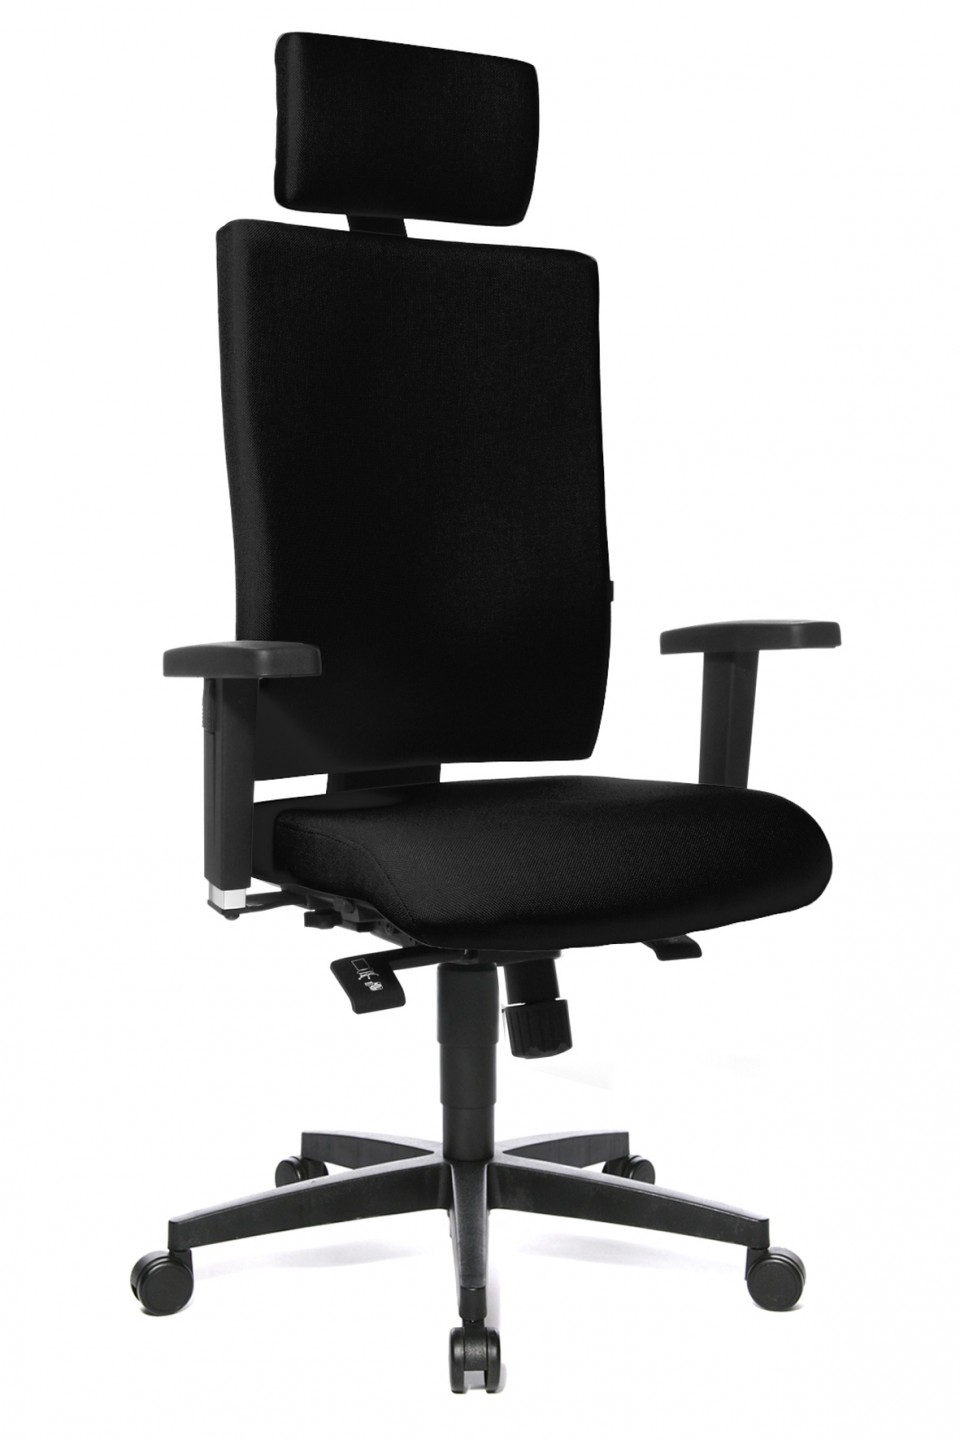 fauteuil bureau ergonomique lightstar achat si ges. Black Bedroom Furniture Sets. Home Design Ideas